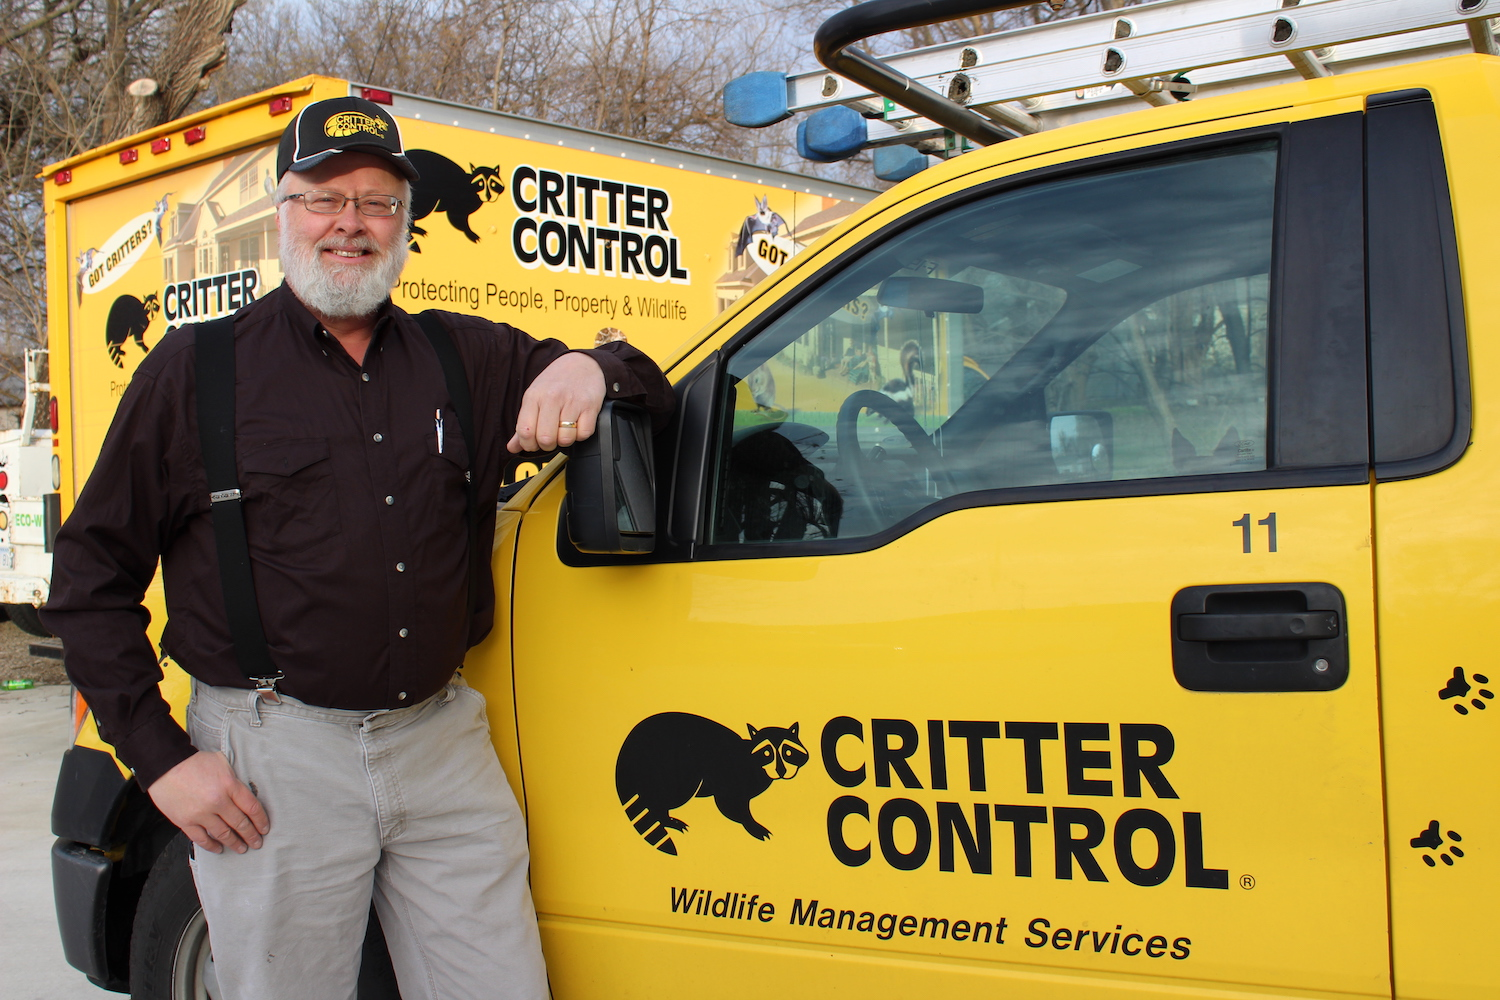 Tom Brungardt - Critter Control Owner